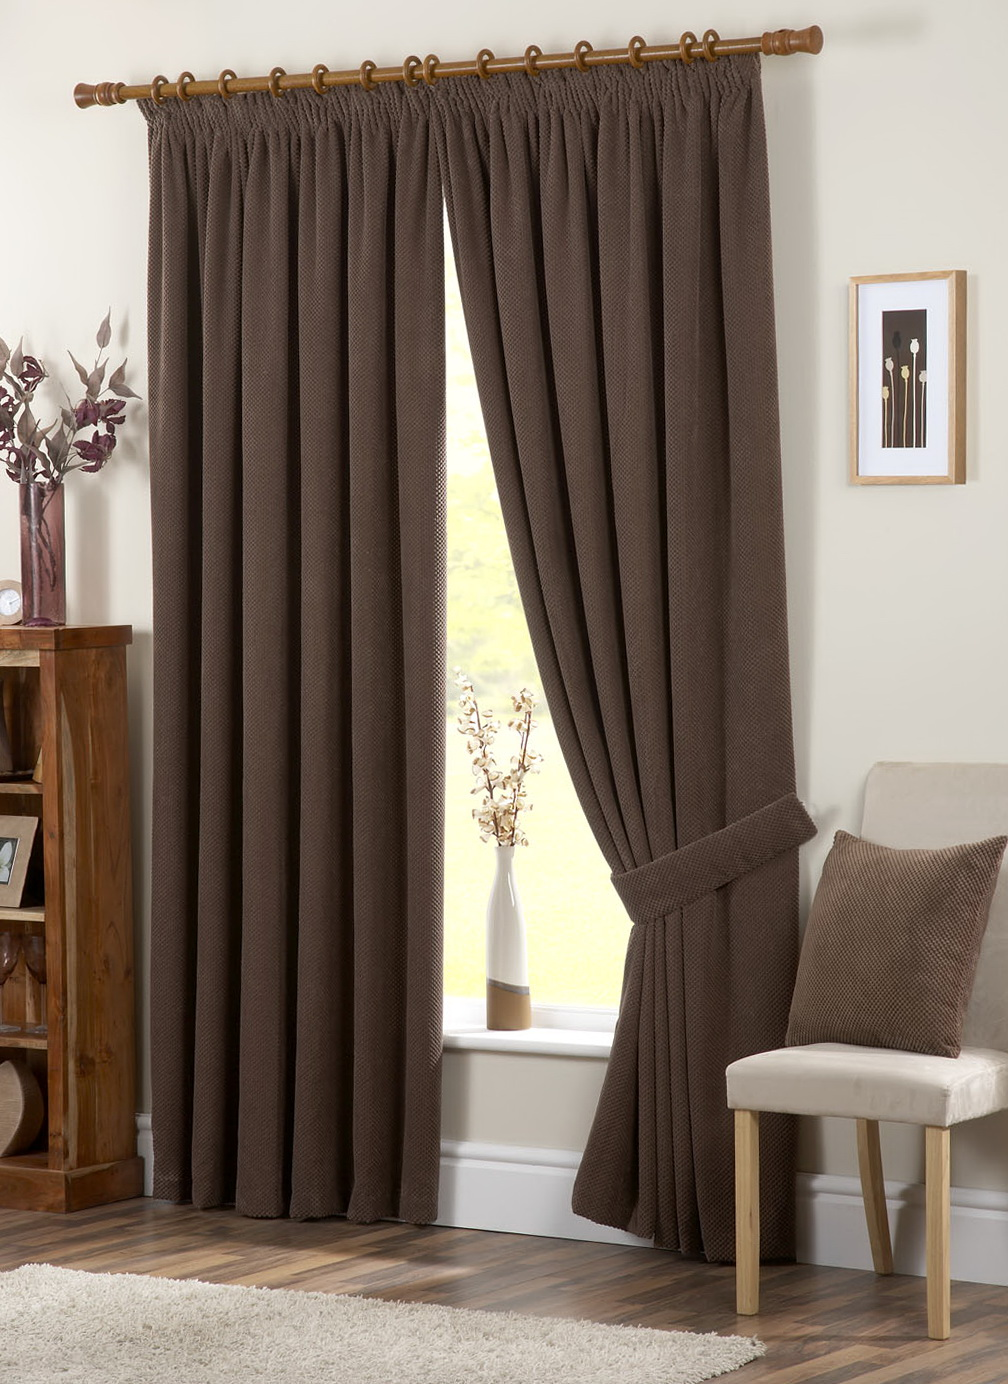 Chocolate Brown Eyelet Curtains